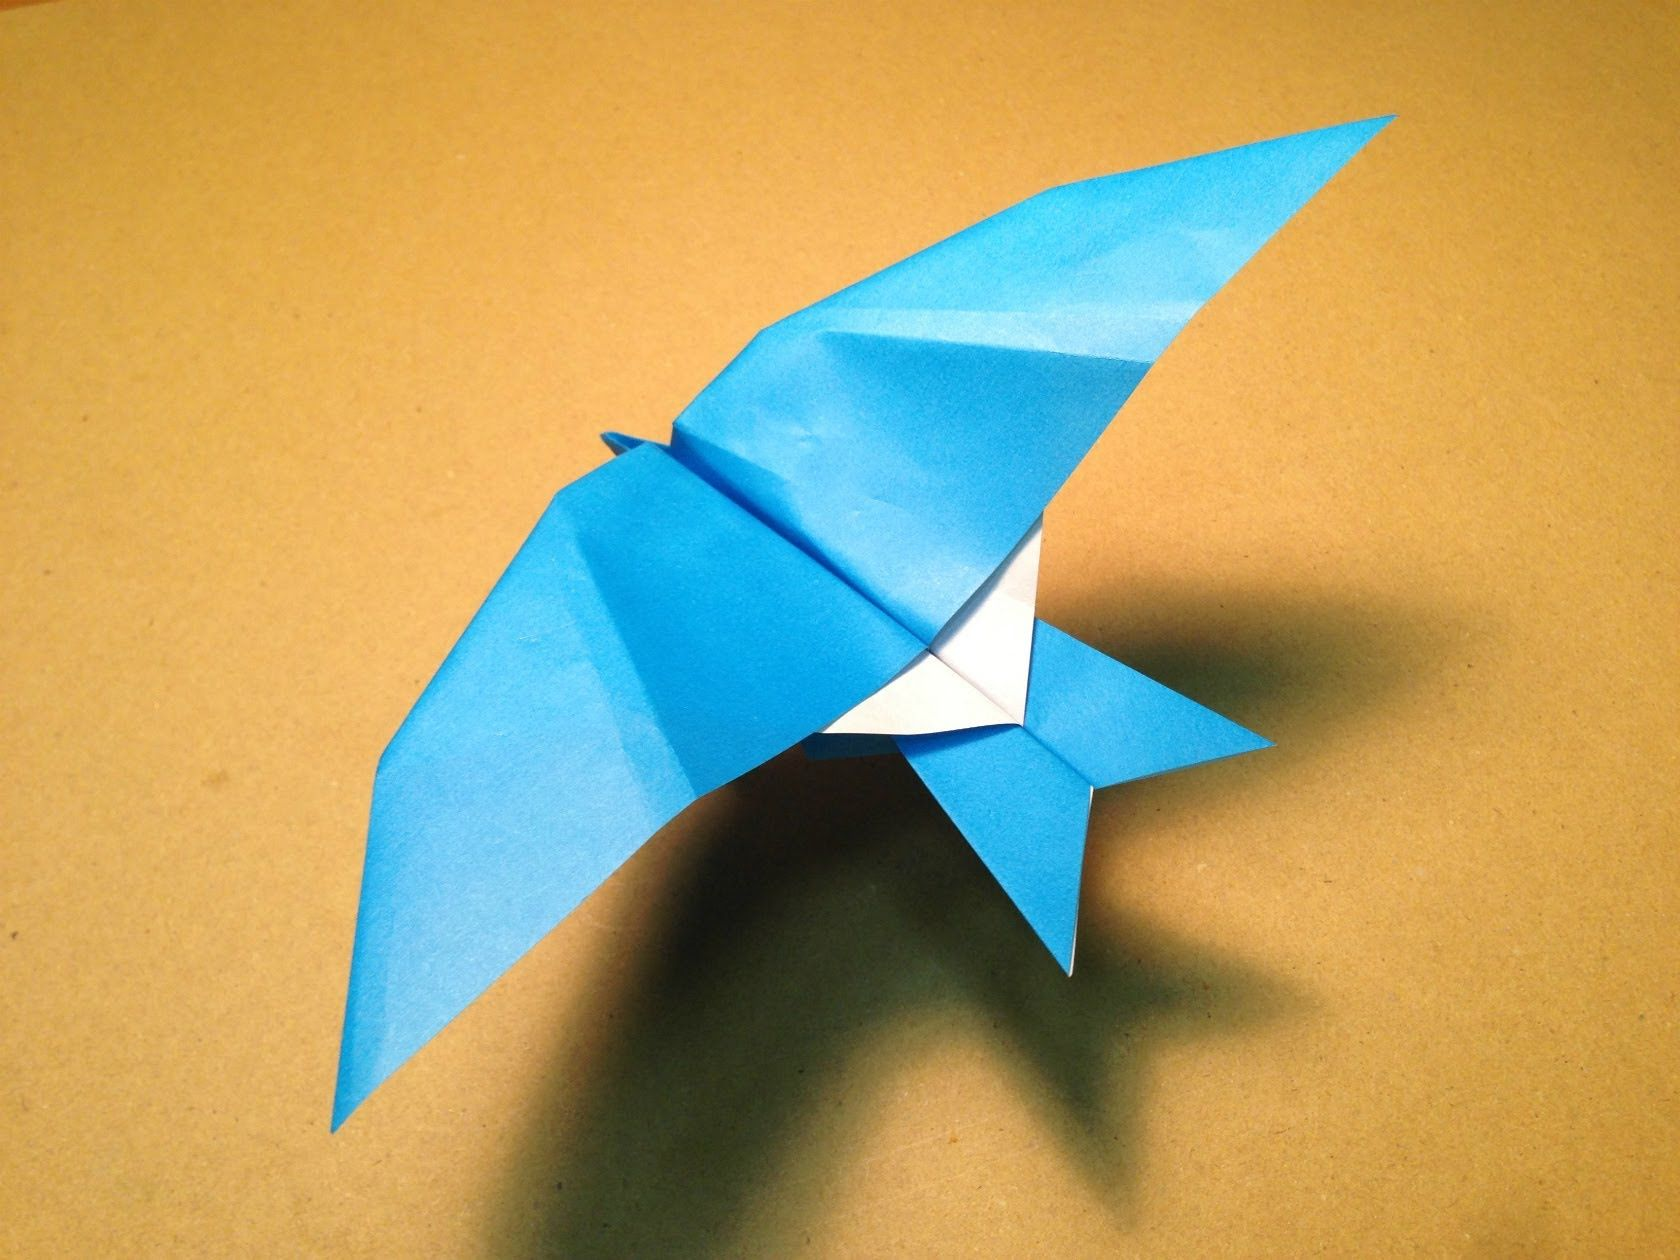 Origami Bird: How To Make a Paper Bird - Easy Origami Tuto… | Flickr | 1260x1680